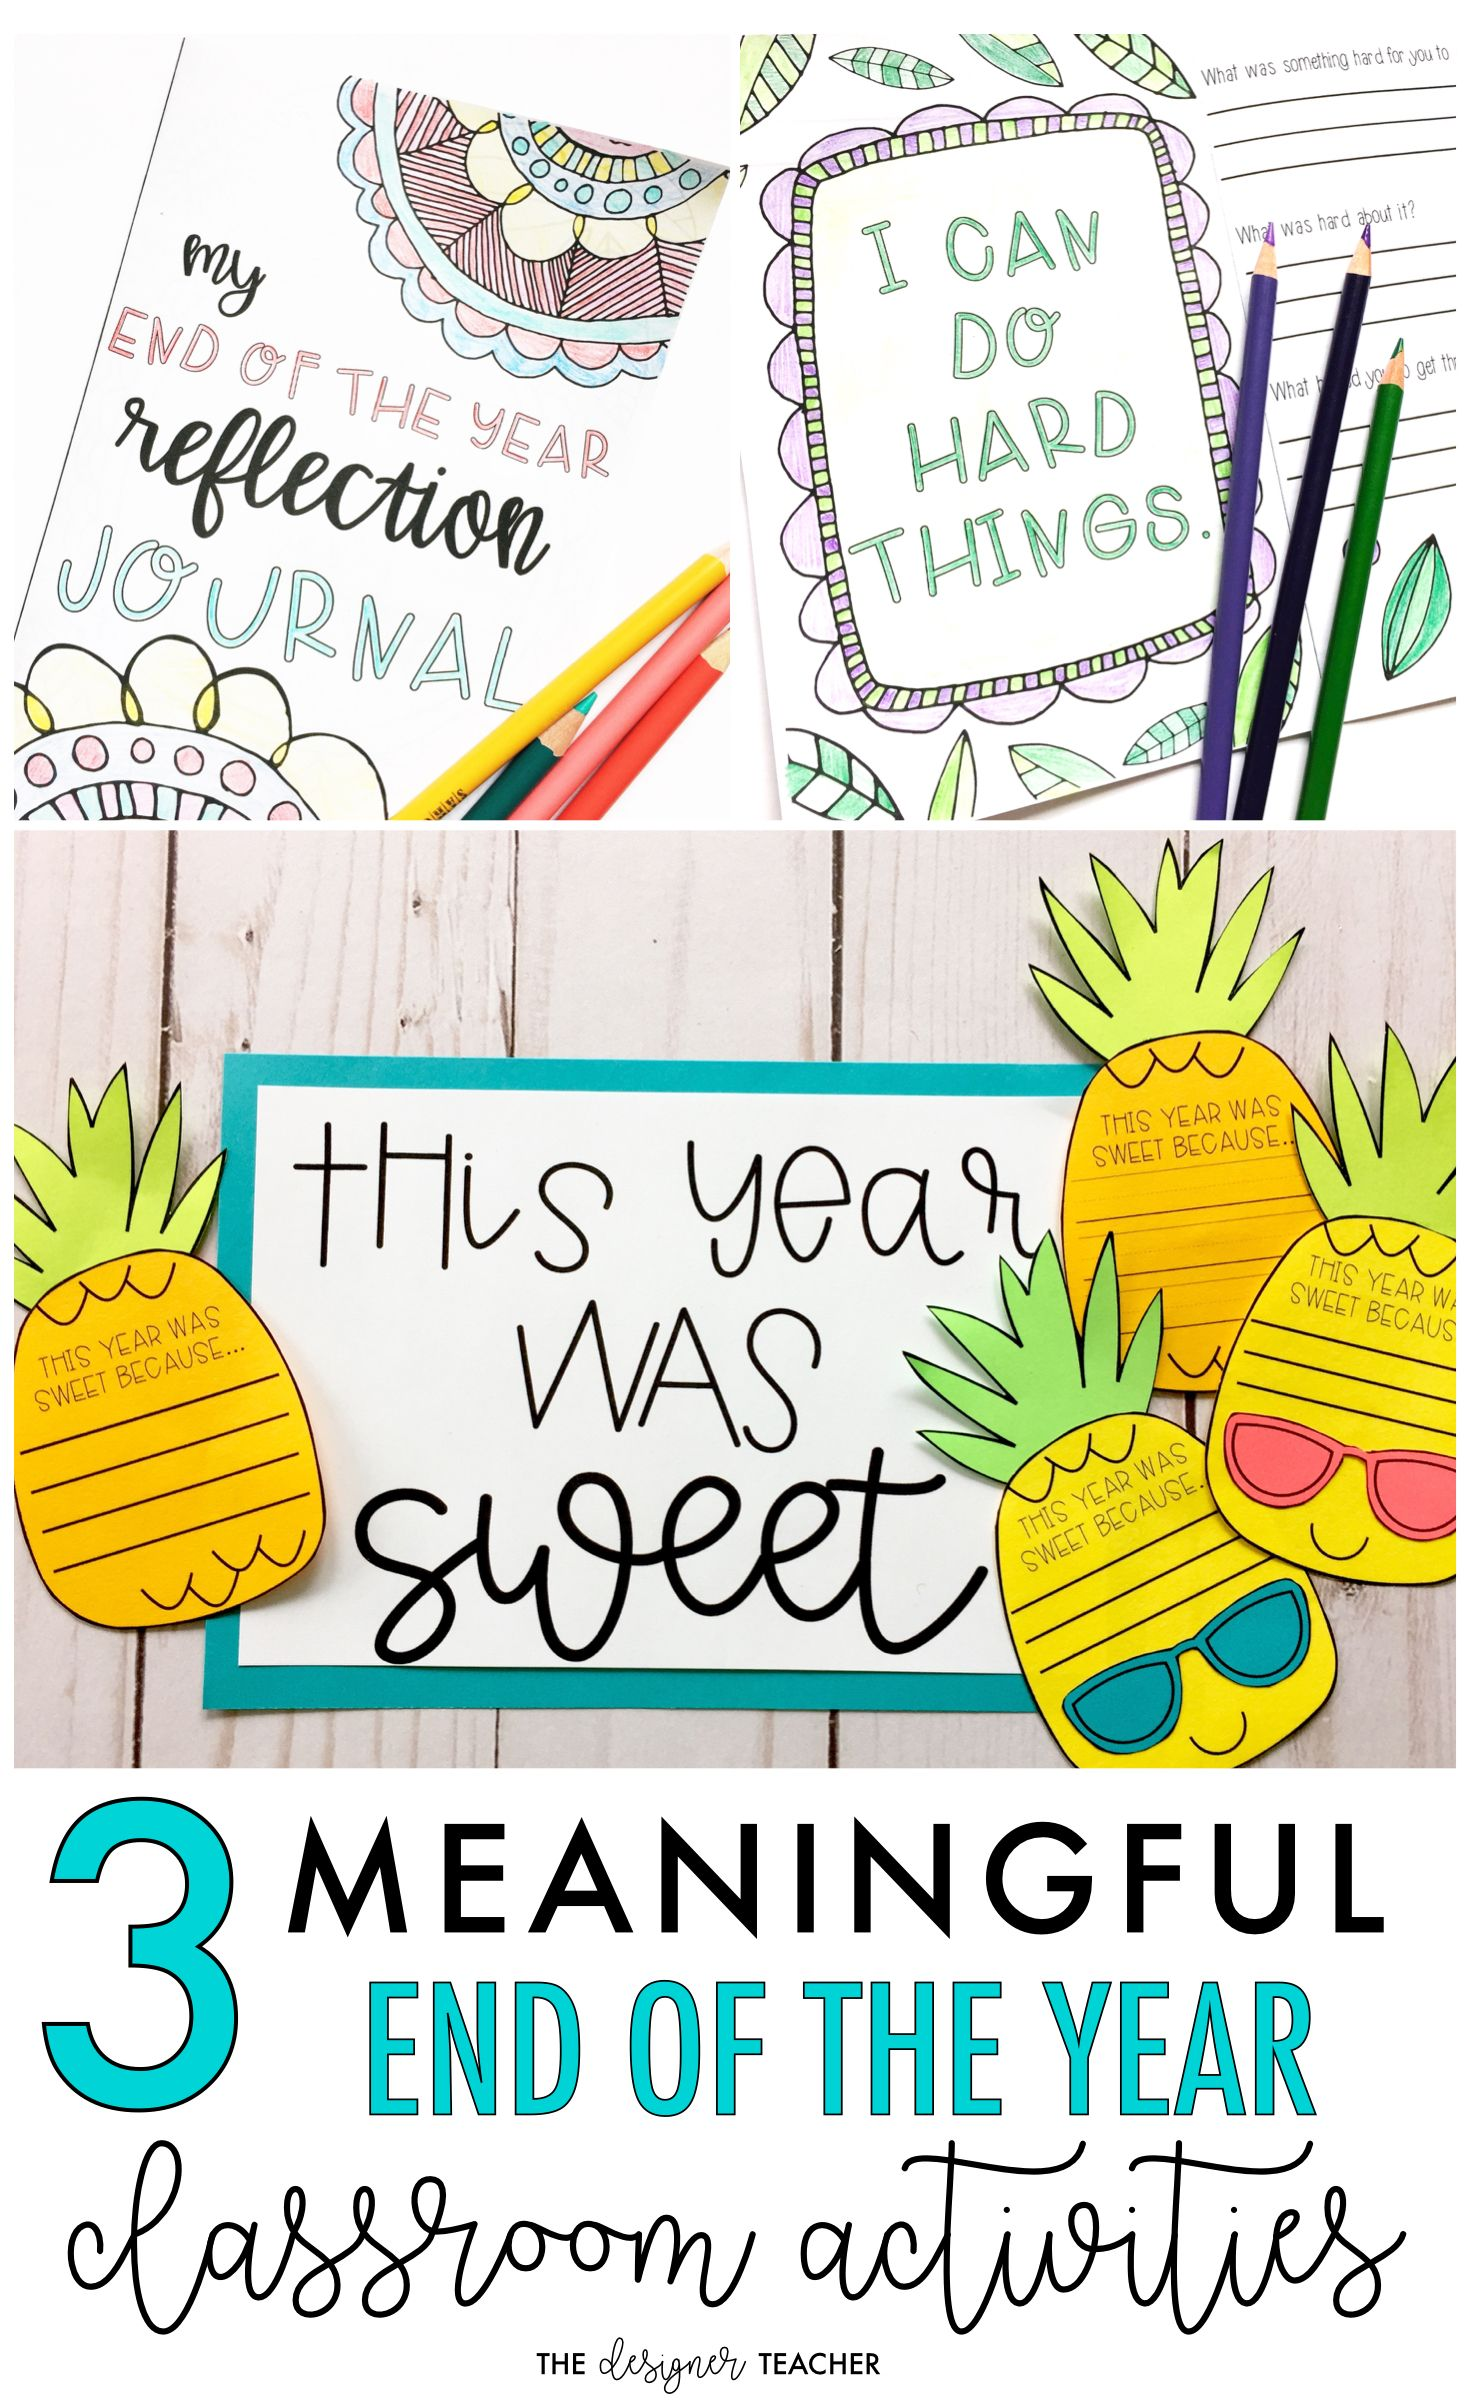 3 Meaningful End Of The Year Classroom Activities